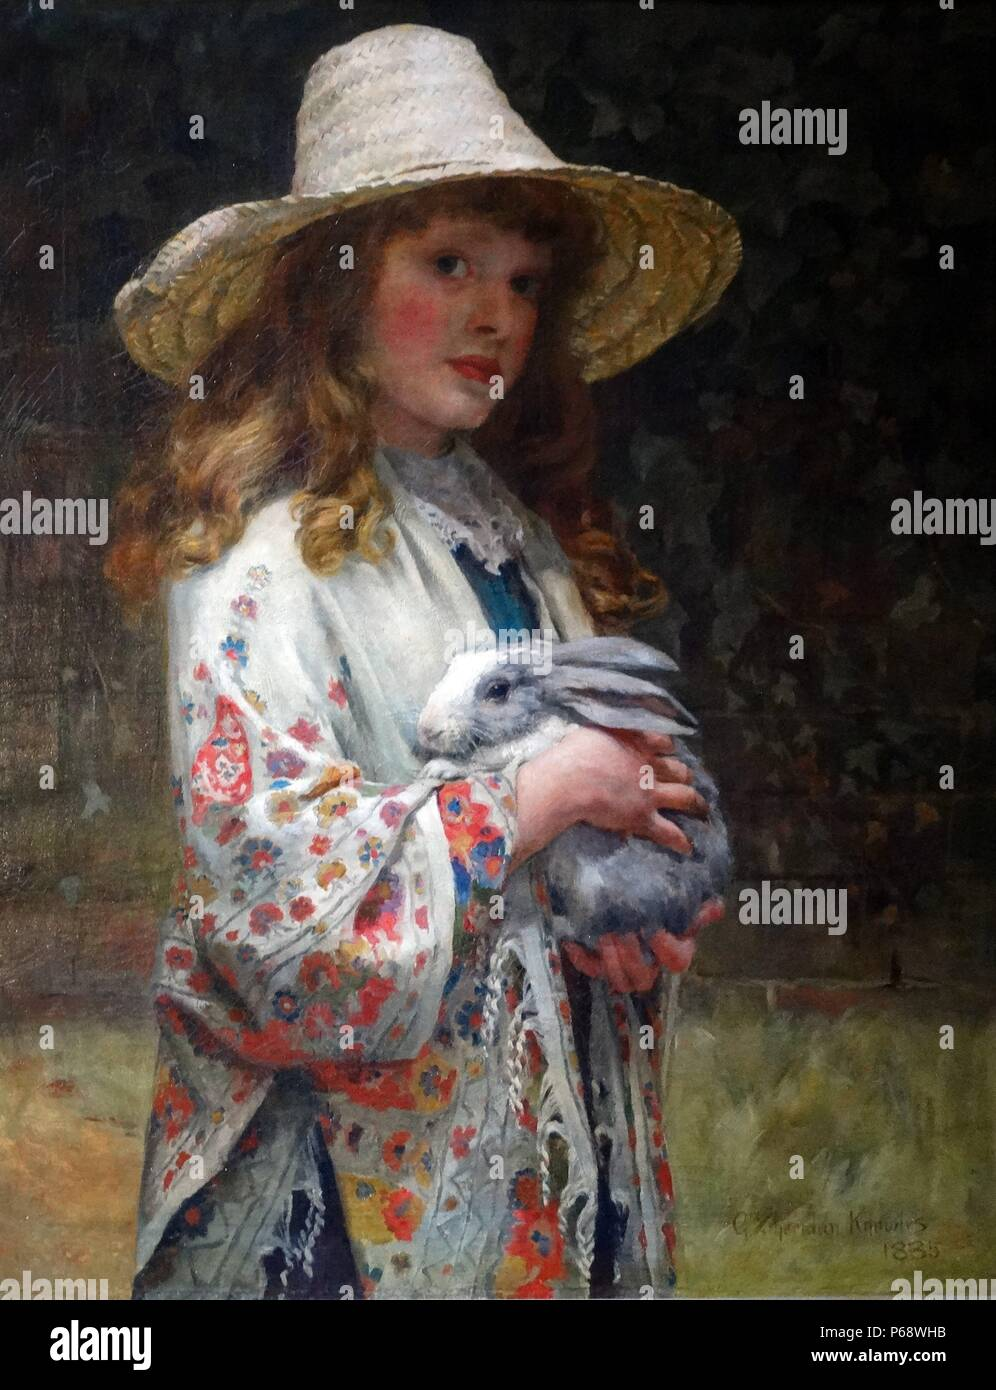 Her First Love' by George Sheridan Knowles (1863-1931) - Stock Image